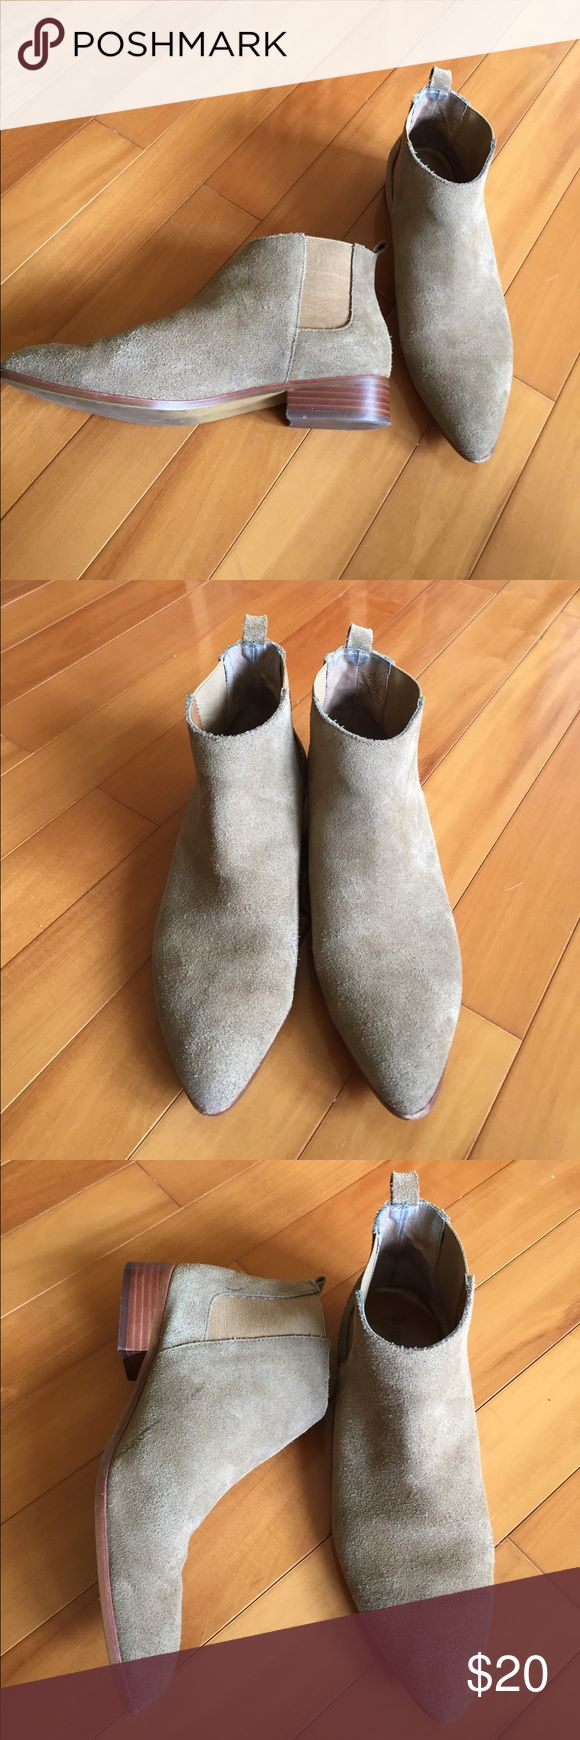 Gap Low Heel Bootie Real suede. Worn with some knicks and marks here and there. Still has a lot of life left! GAP Shoes Ankle Boots & Booties